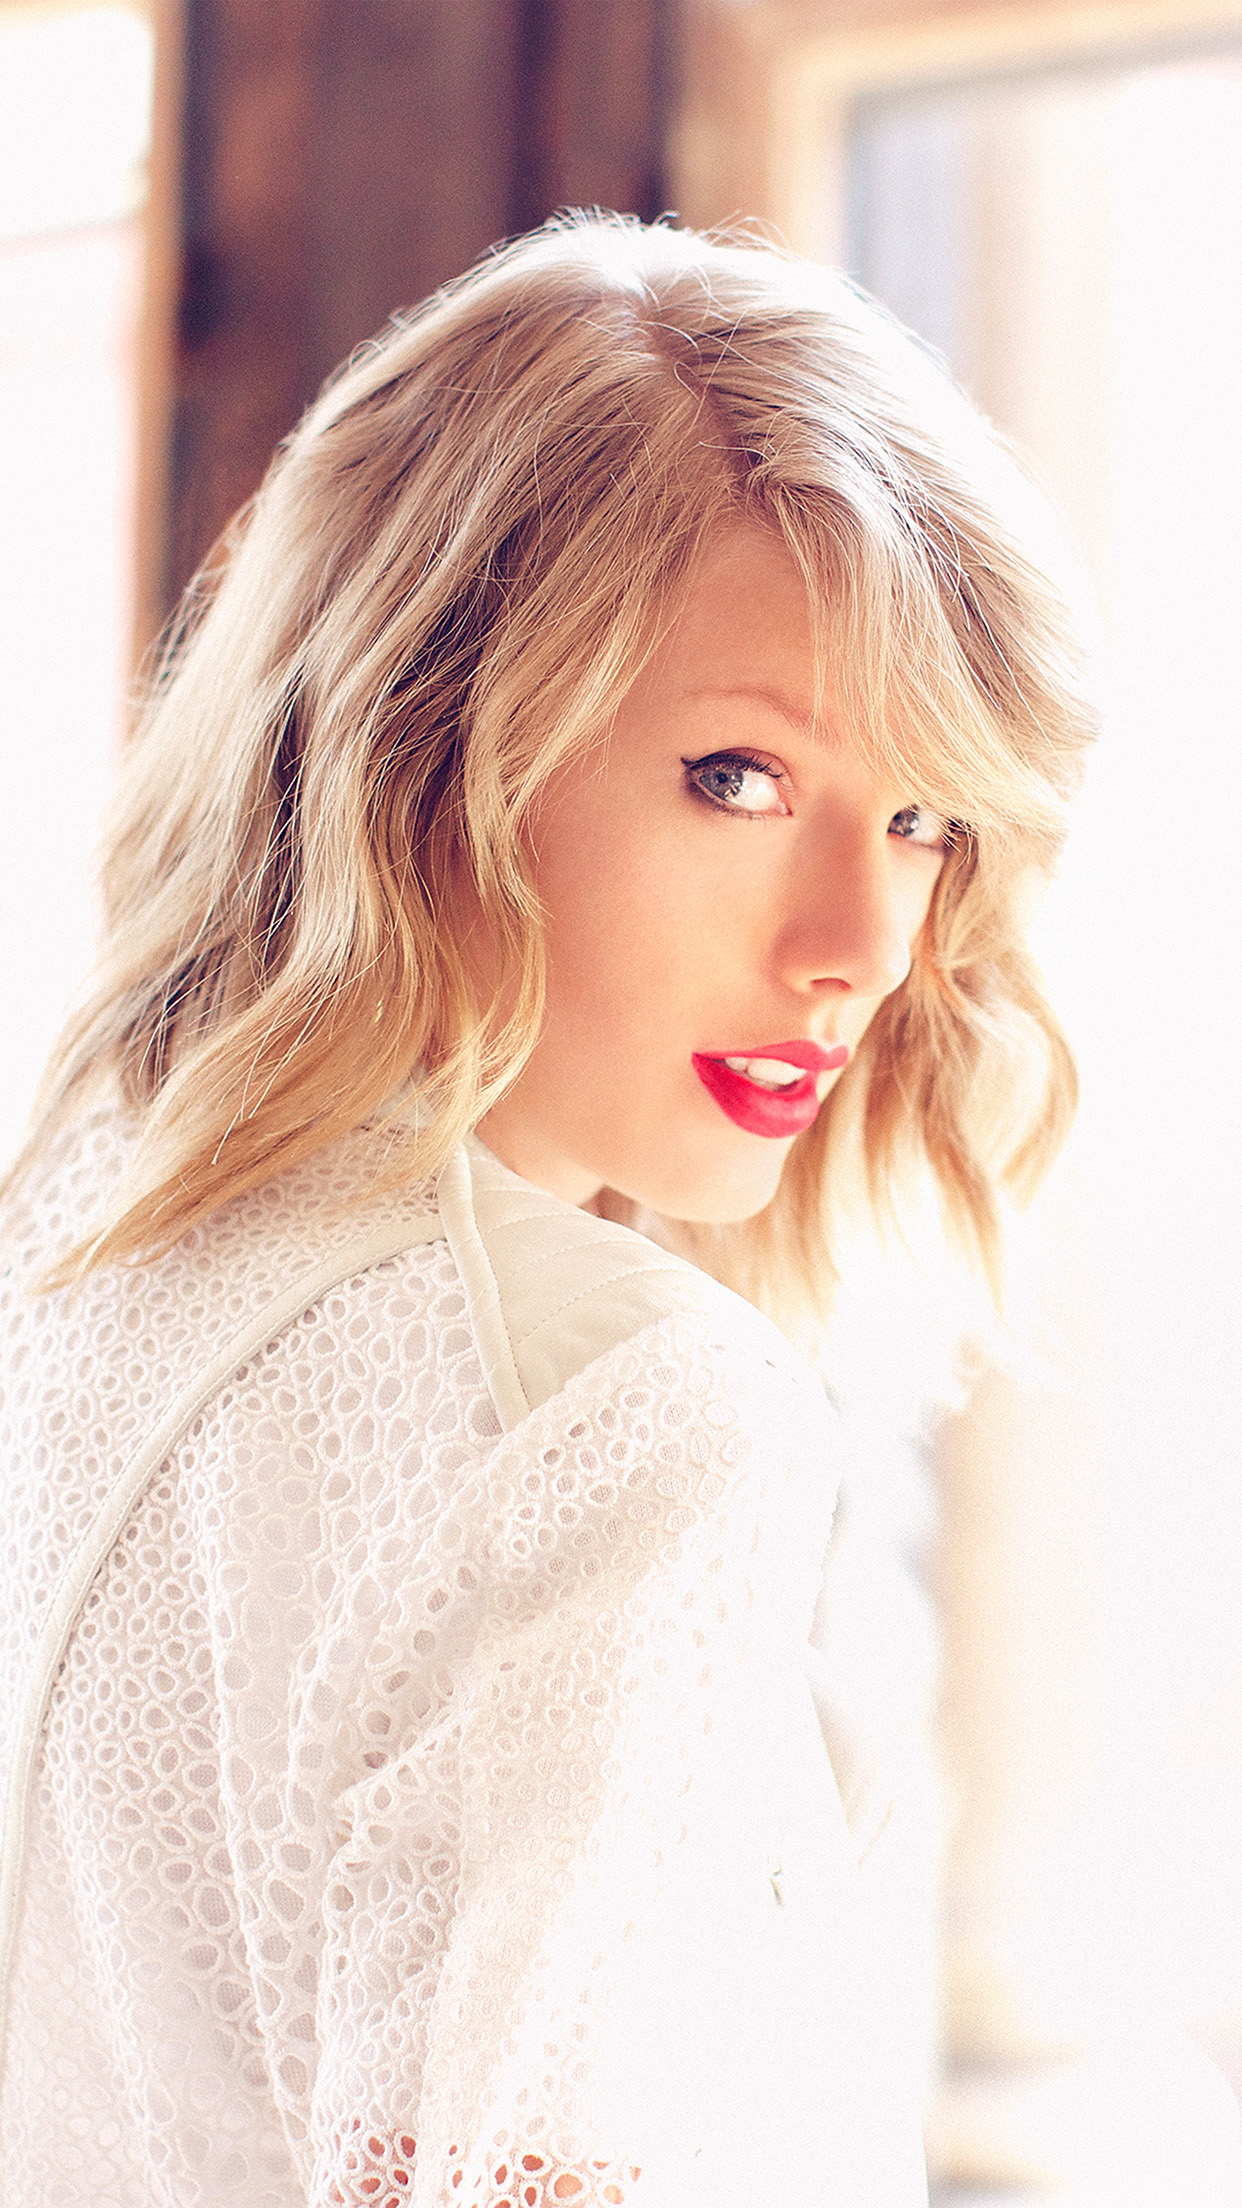 iphonepapers | iphone 8 wallpaper | hj38-taylor-swift-music-girl